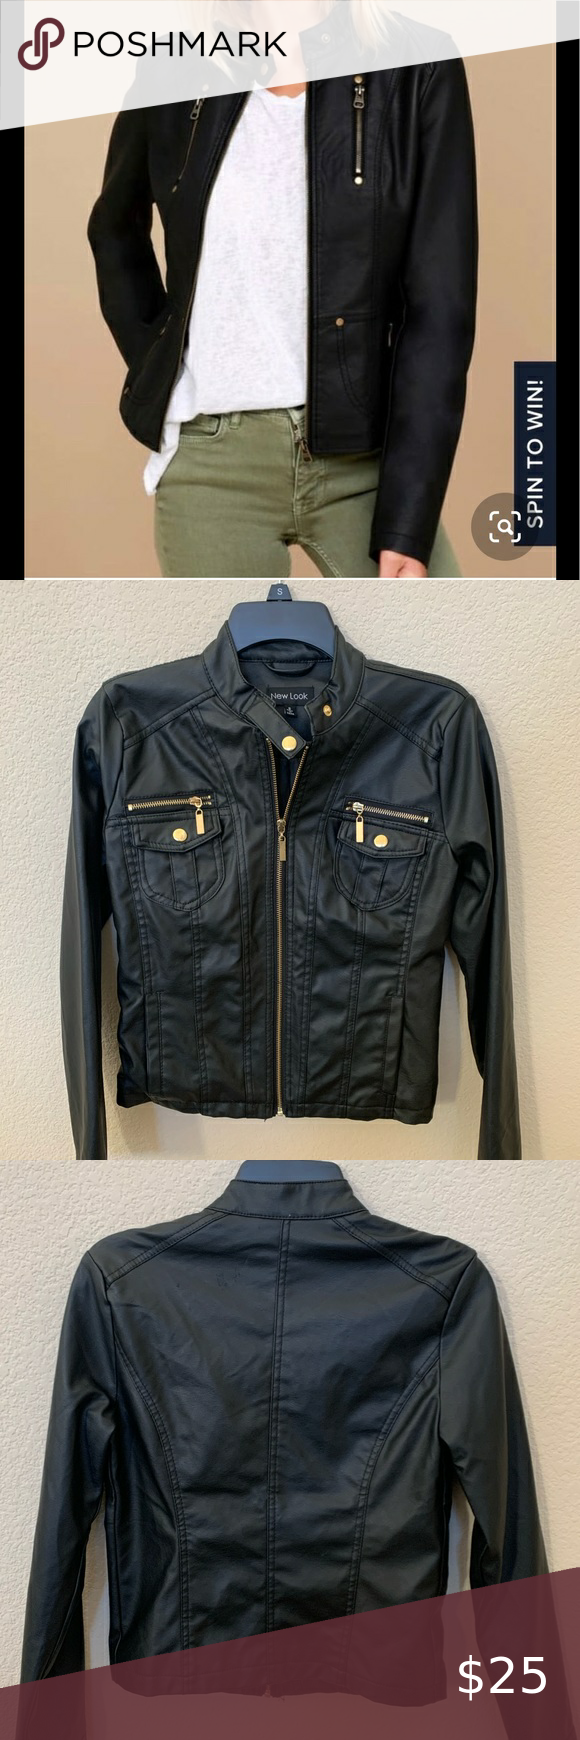 New Look Faux Leather Jacket New Look Jackets Leather Jacket Faux Leather Jackets [ 1740 x 580 Pixel ]